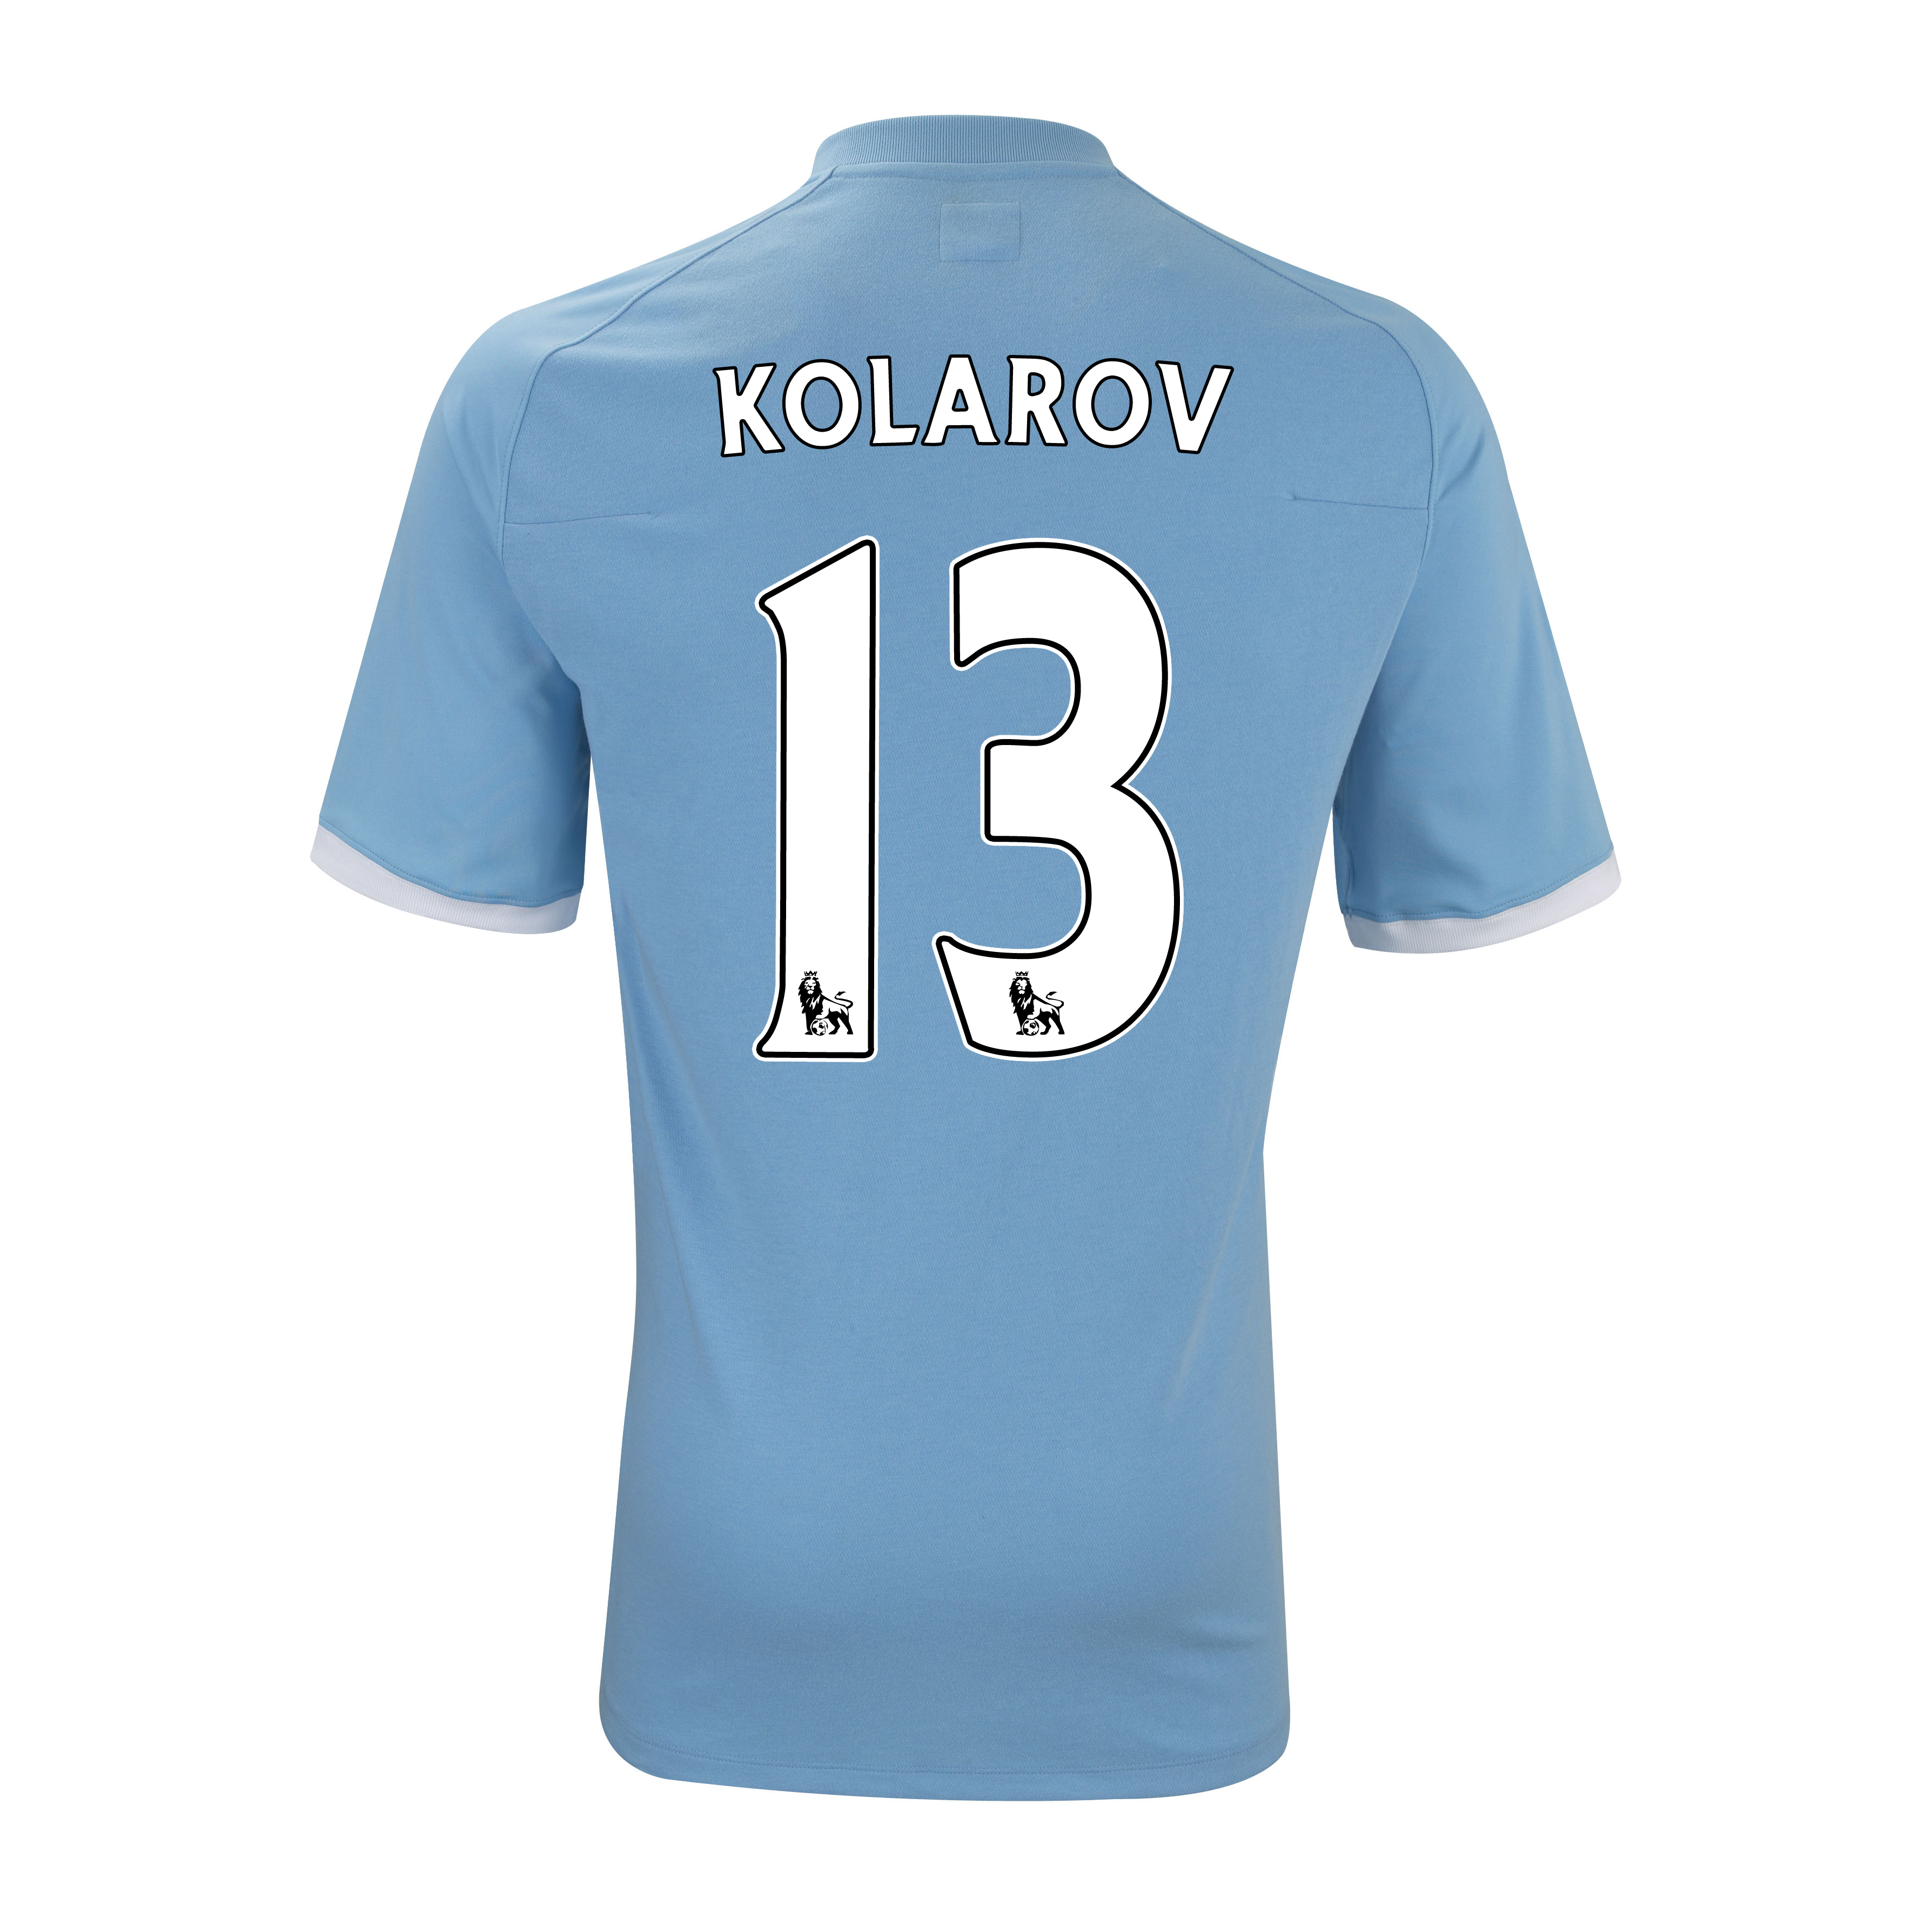 Manchester City Home Shirt 2010/11 with Kolarov 13 Printing - Kids